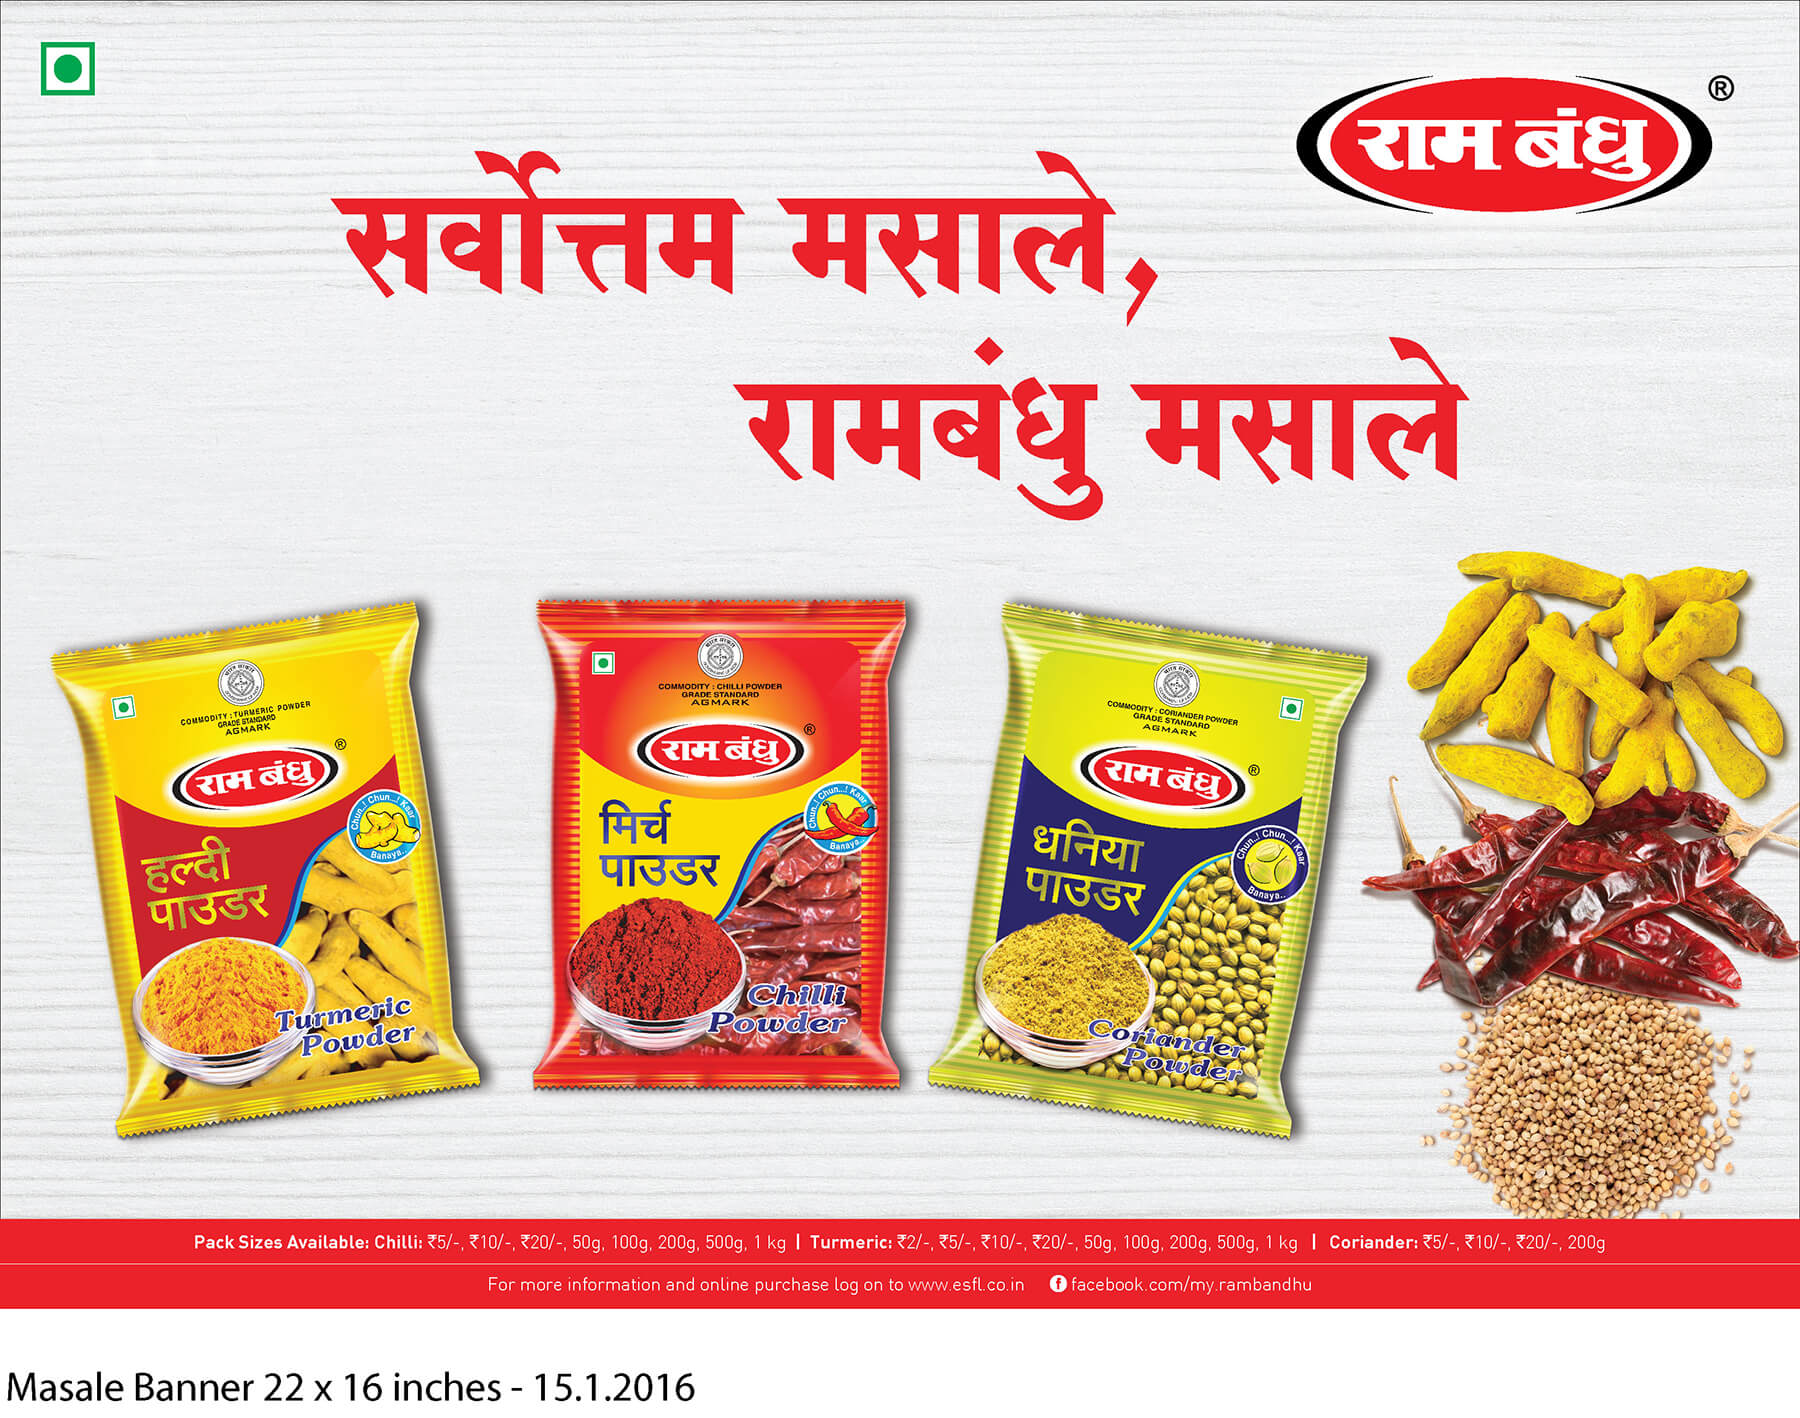 Ground Spices Campaign